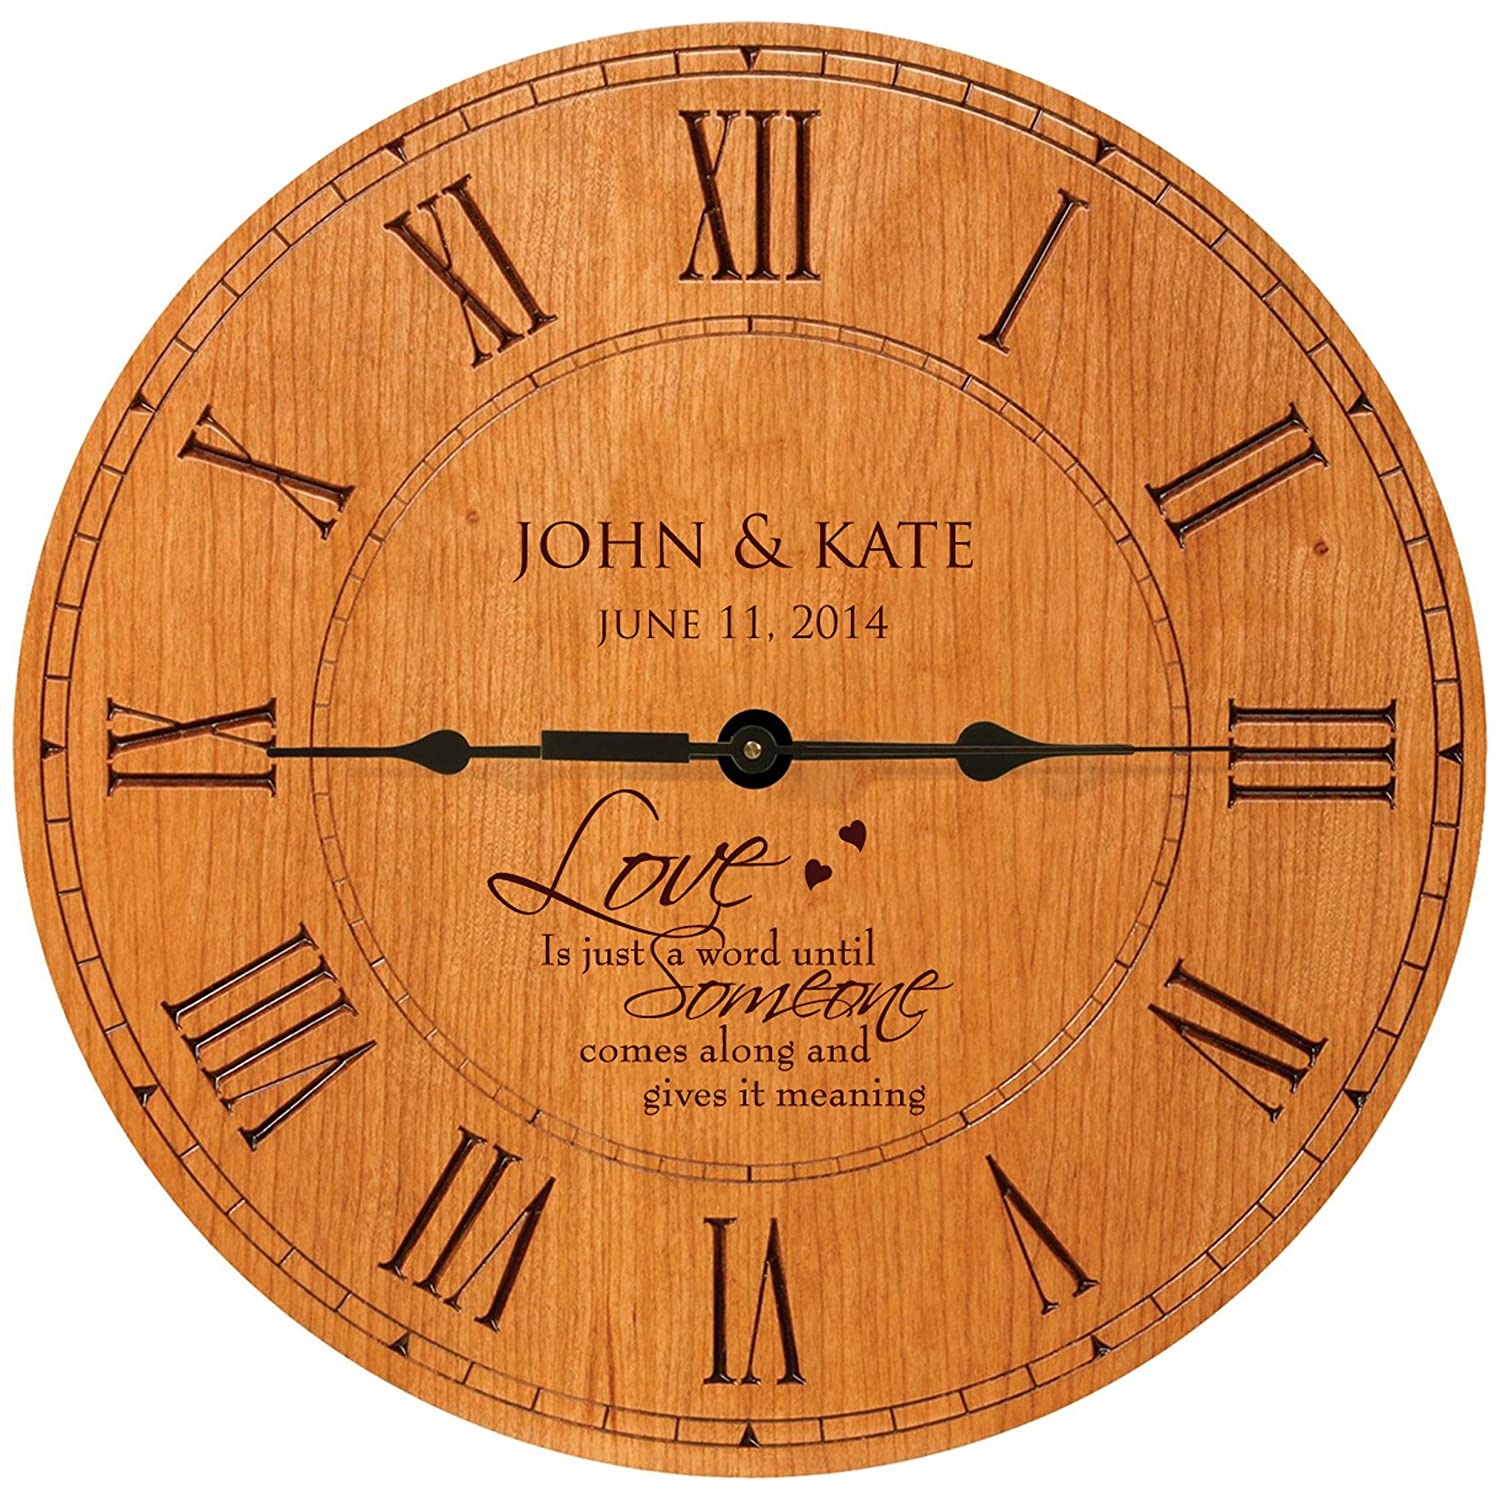 Amazon personalized wedding gifts modern decorative wall amazon personalized wedding gifts modern decorative wall clocks housewarming anniversary gifts for couple 12x12 by dayspring milestones cherry amipublicfo Gallery